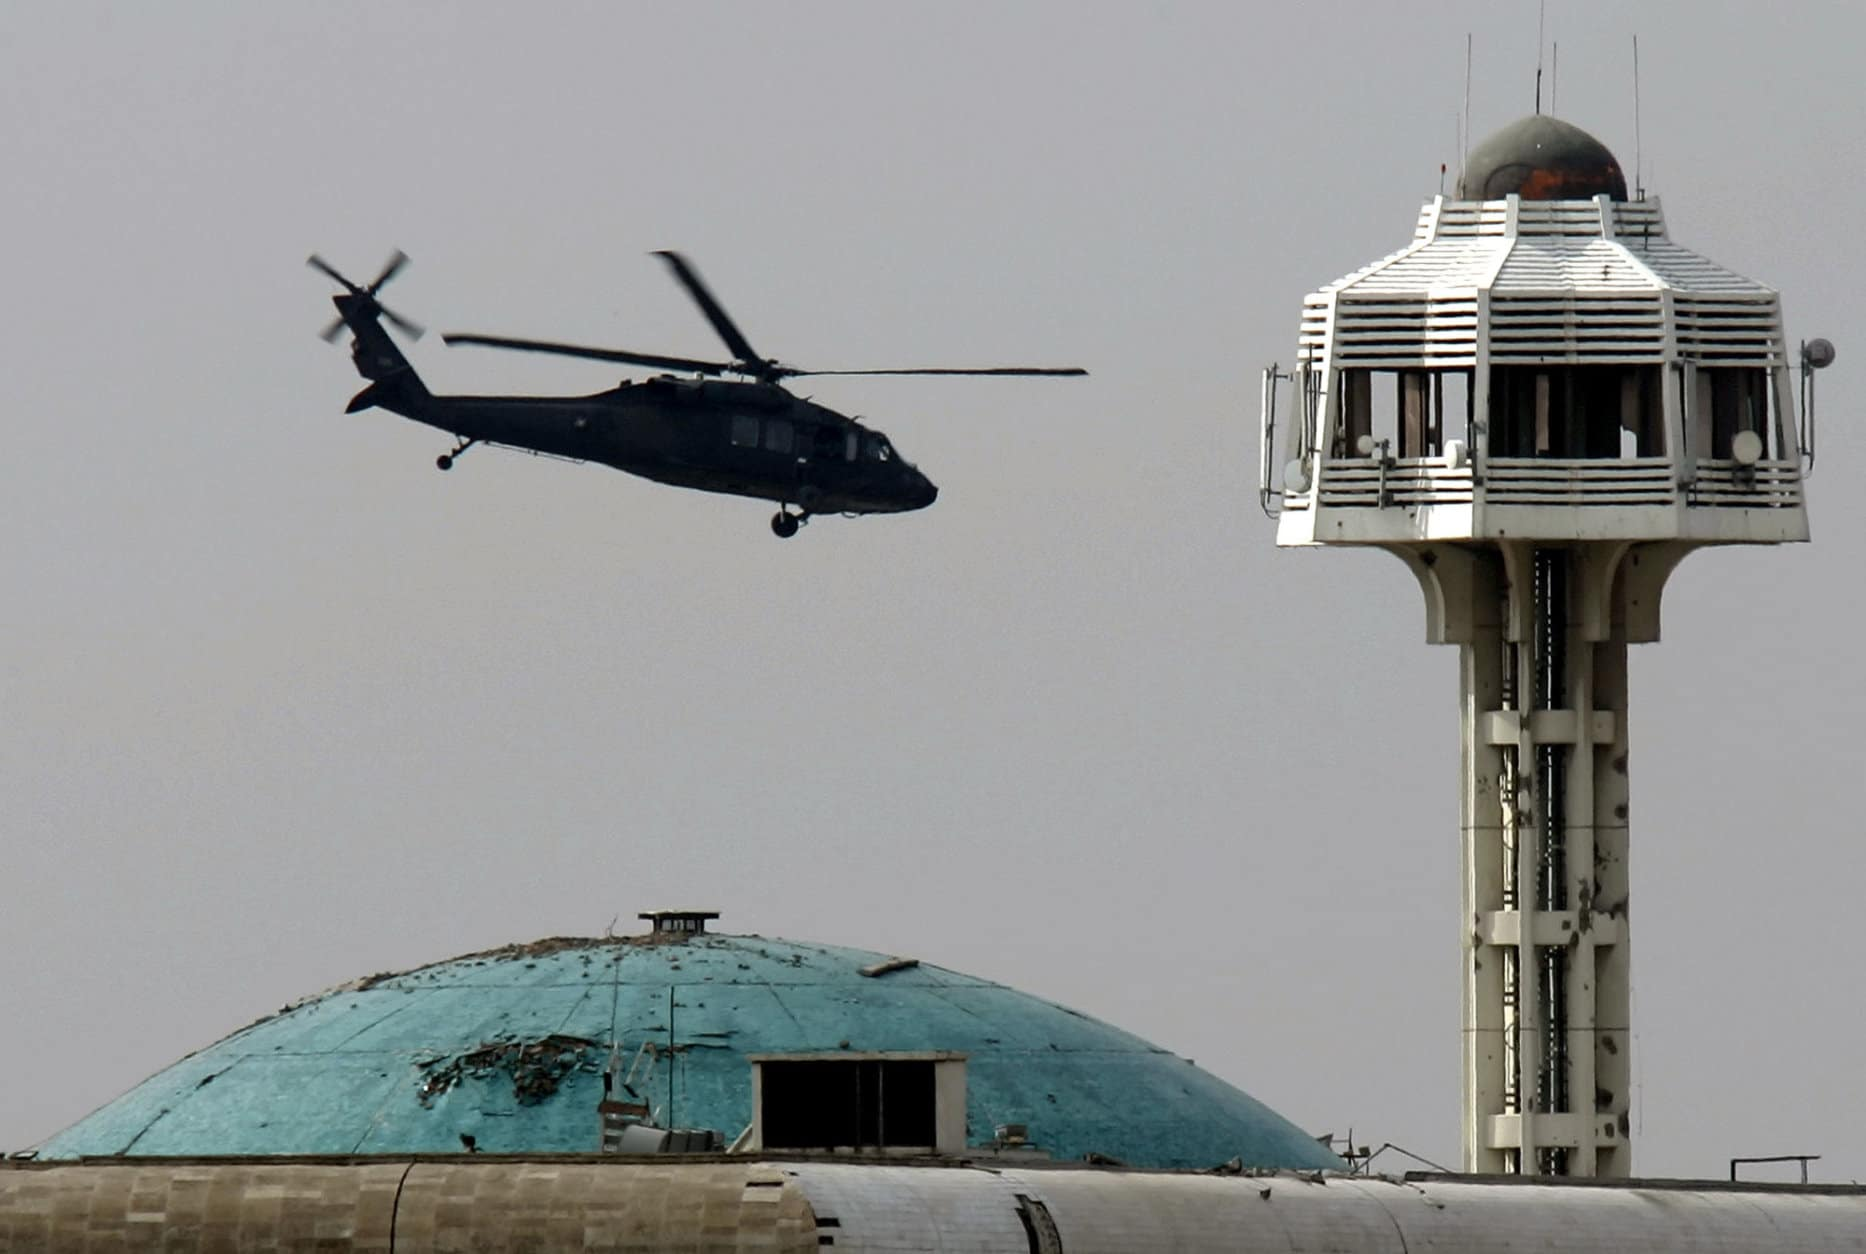 A U.S. Army Black Hawk helicopter flies over Baghdad's heavily fortified Green Zone, Iraq, Wednesday, Feb. 7, 2007. The U.S. military said it was investigating reports that an aircraft went down Wednesday and the reports came five days after a U.S. Army helicopter crashed in a hail of gunfire north of Baghdad, - the fourth helicopter lost in Iraq in a two-week span. (AP Photo/Marko Drobnjakovic)